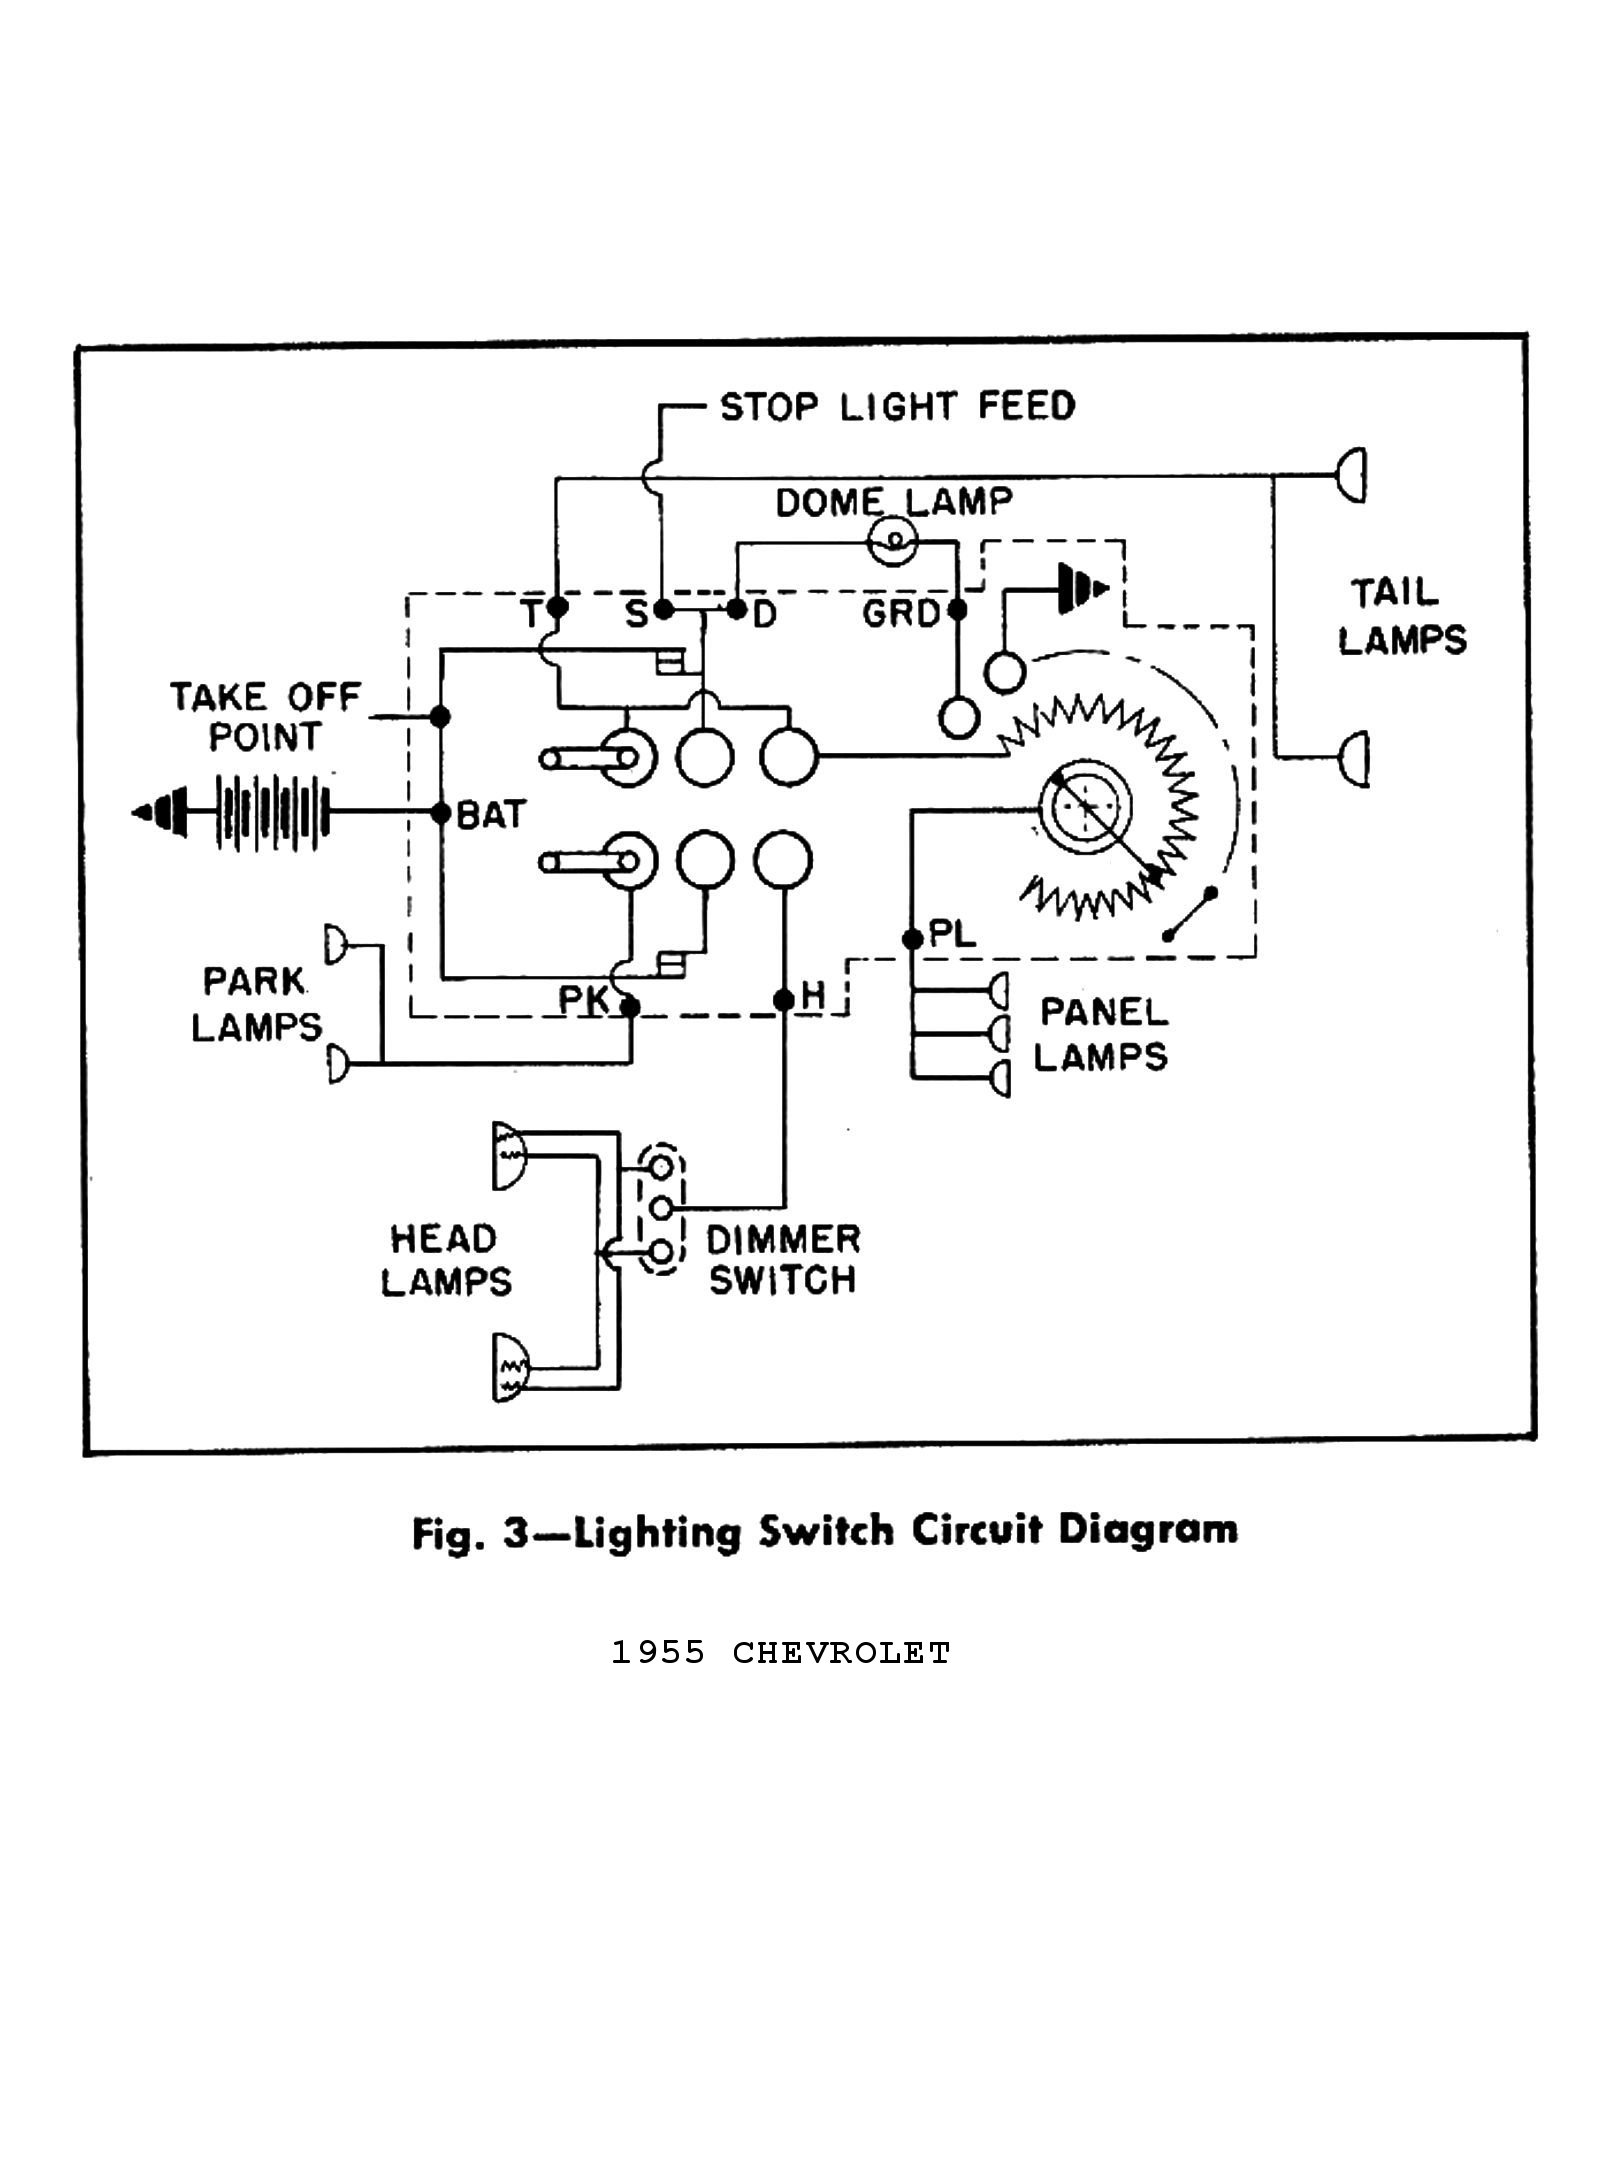 hight resolution of 1950 gmc wiring diagram trusted wiring diagram 01 mustang headlight wiring diagram 1947 dodge headlight switch wiring diagram